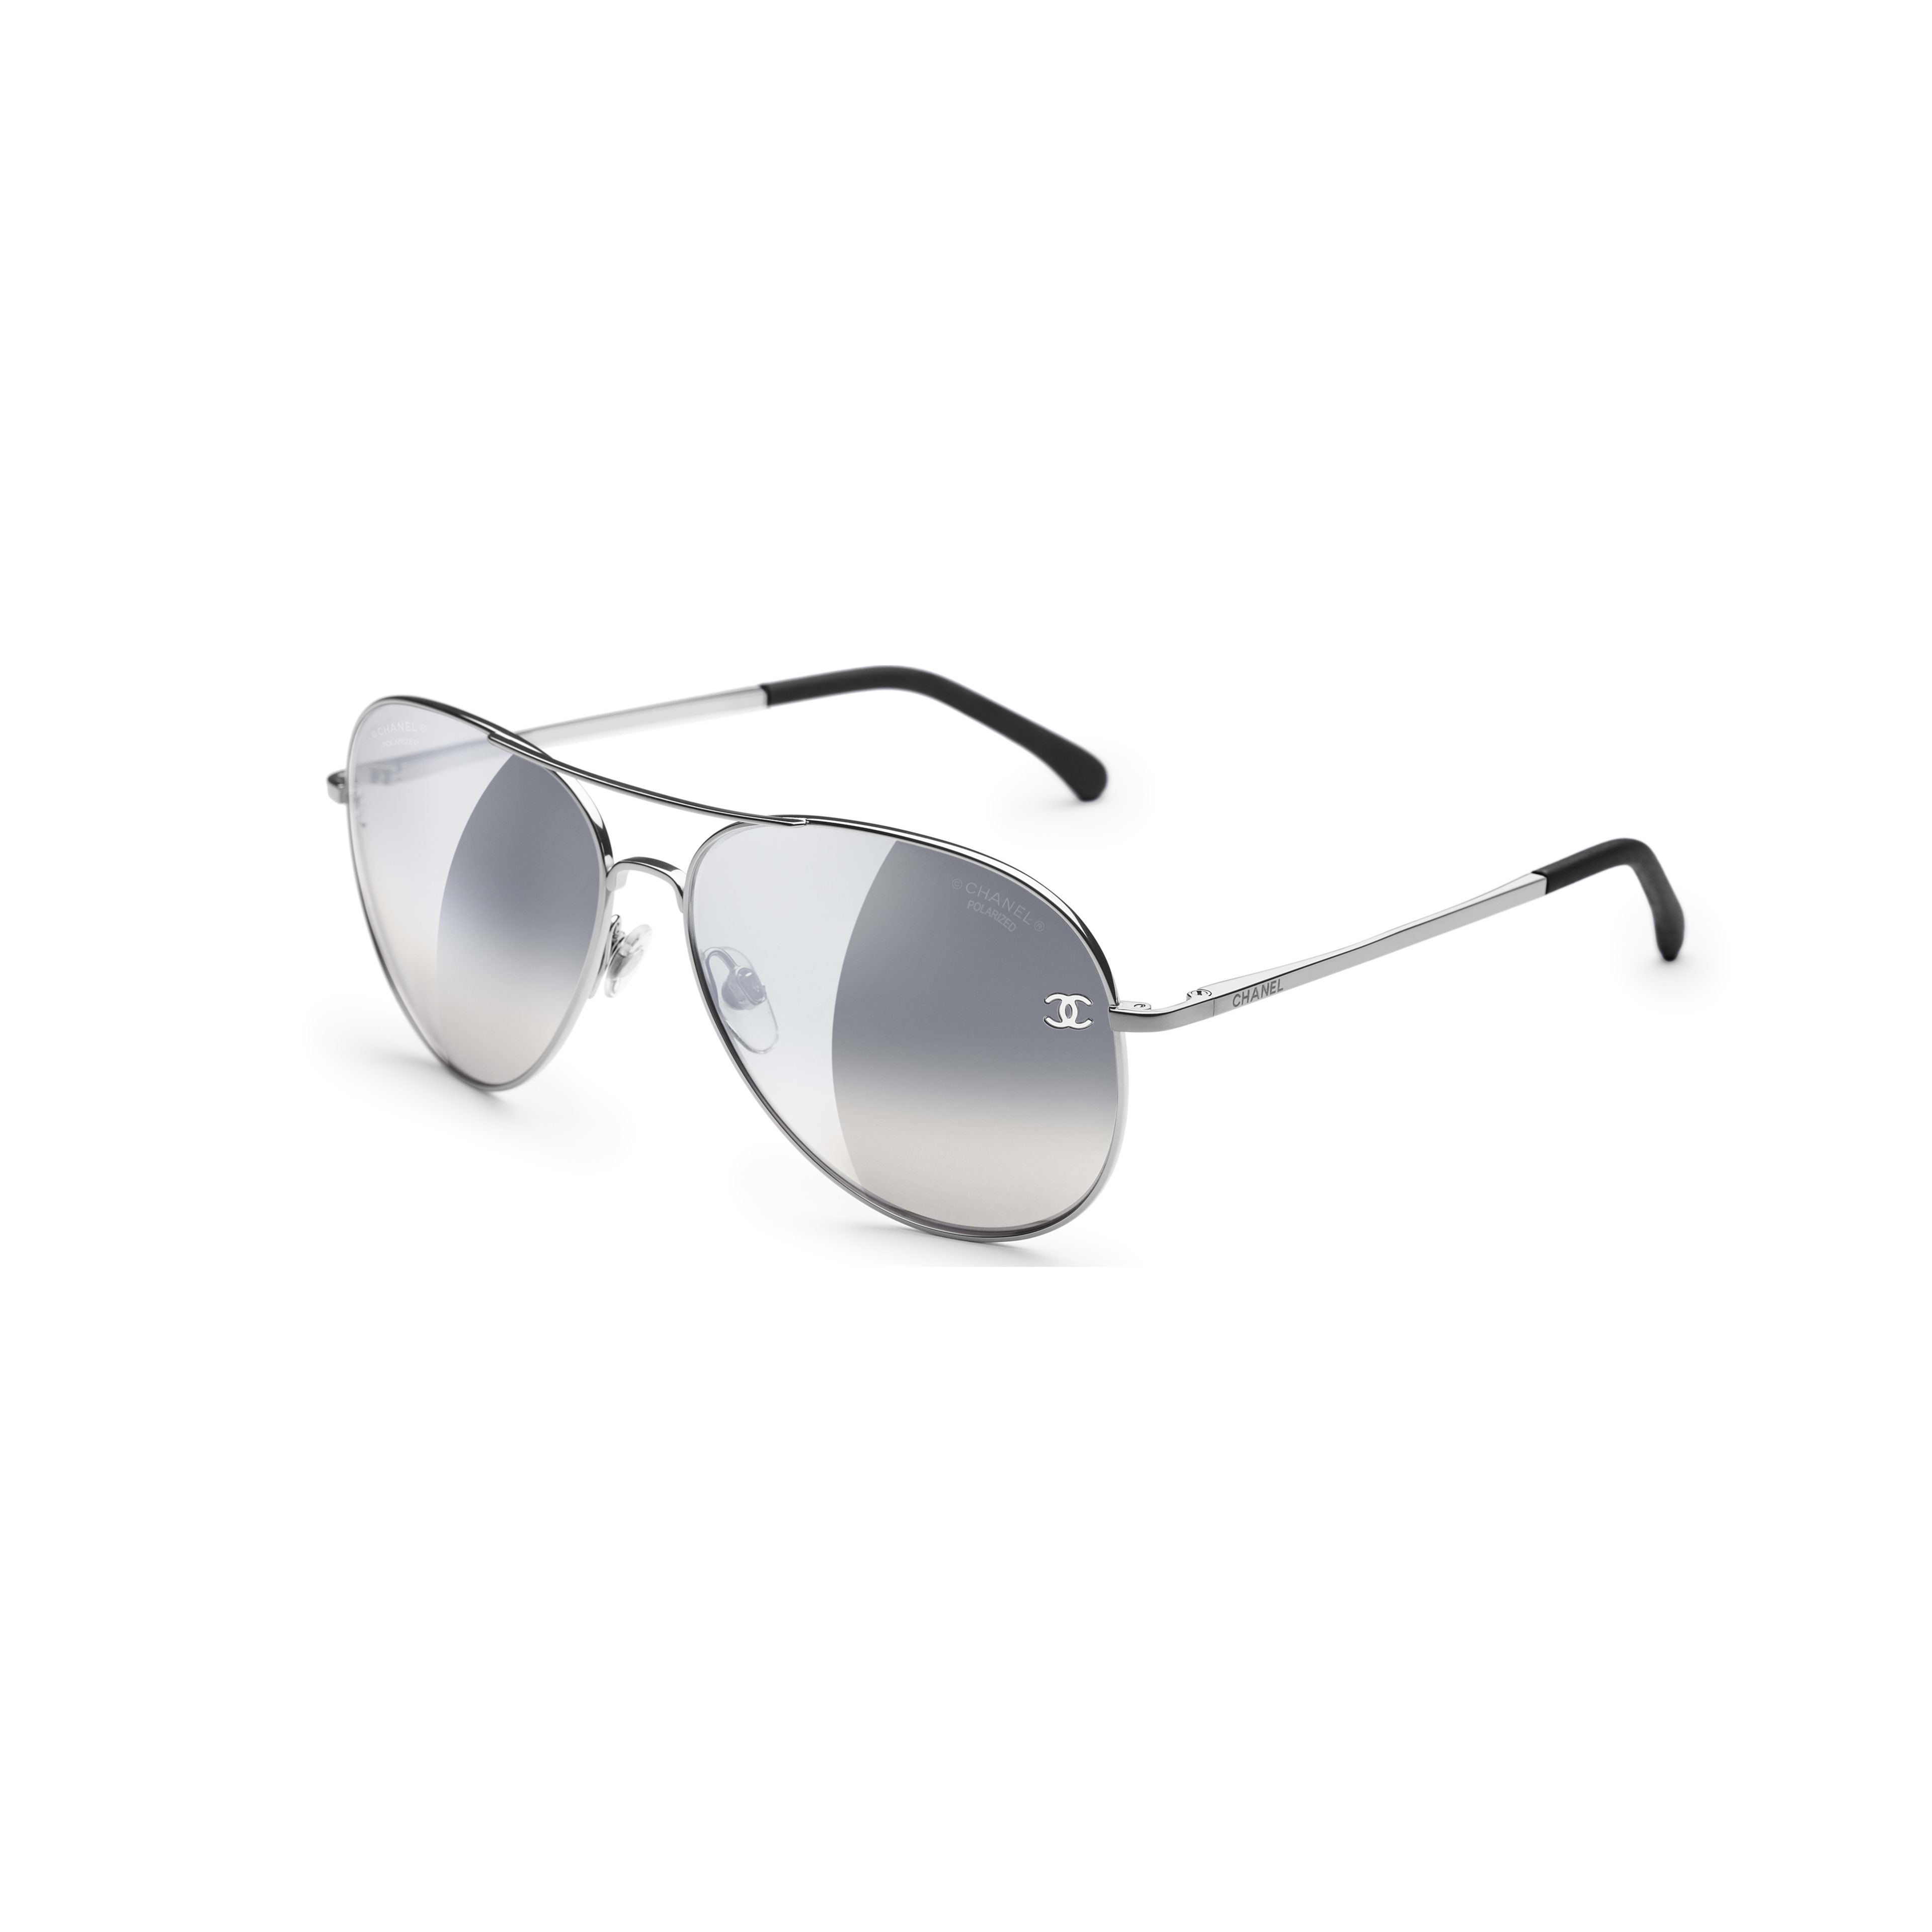 Pilot Sunglasses - Silver - Titanium & Calfskin - CHANEL - Extra view - see standard sized version